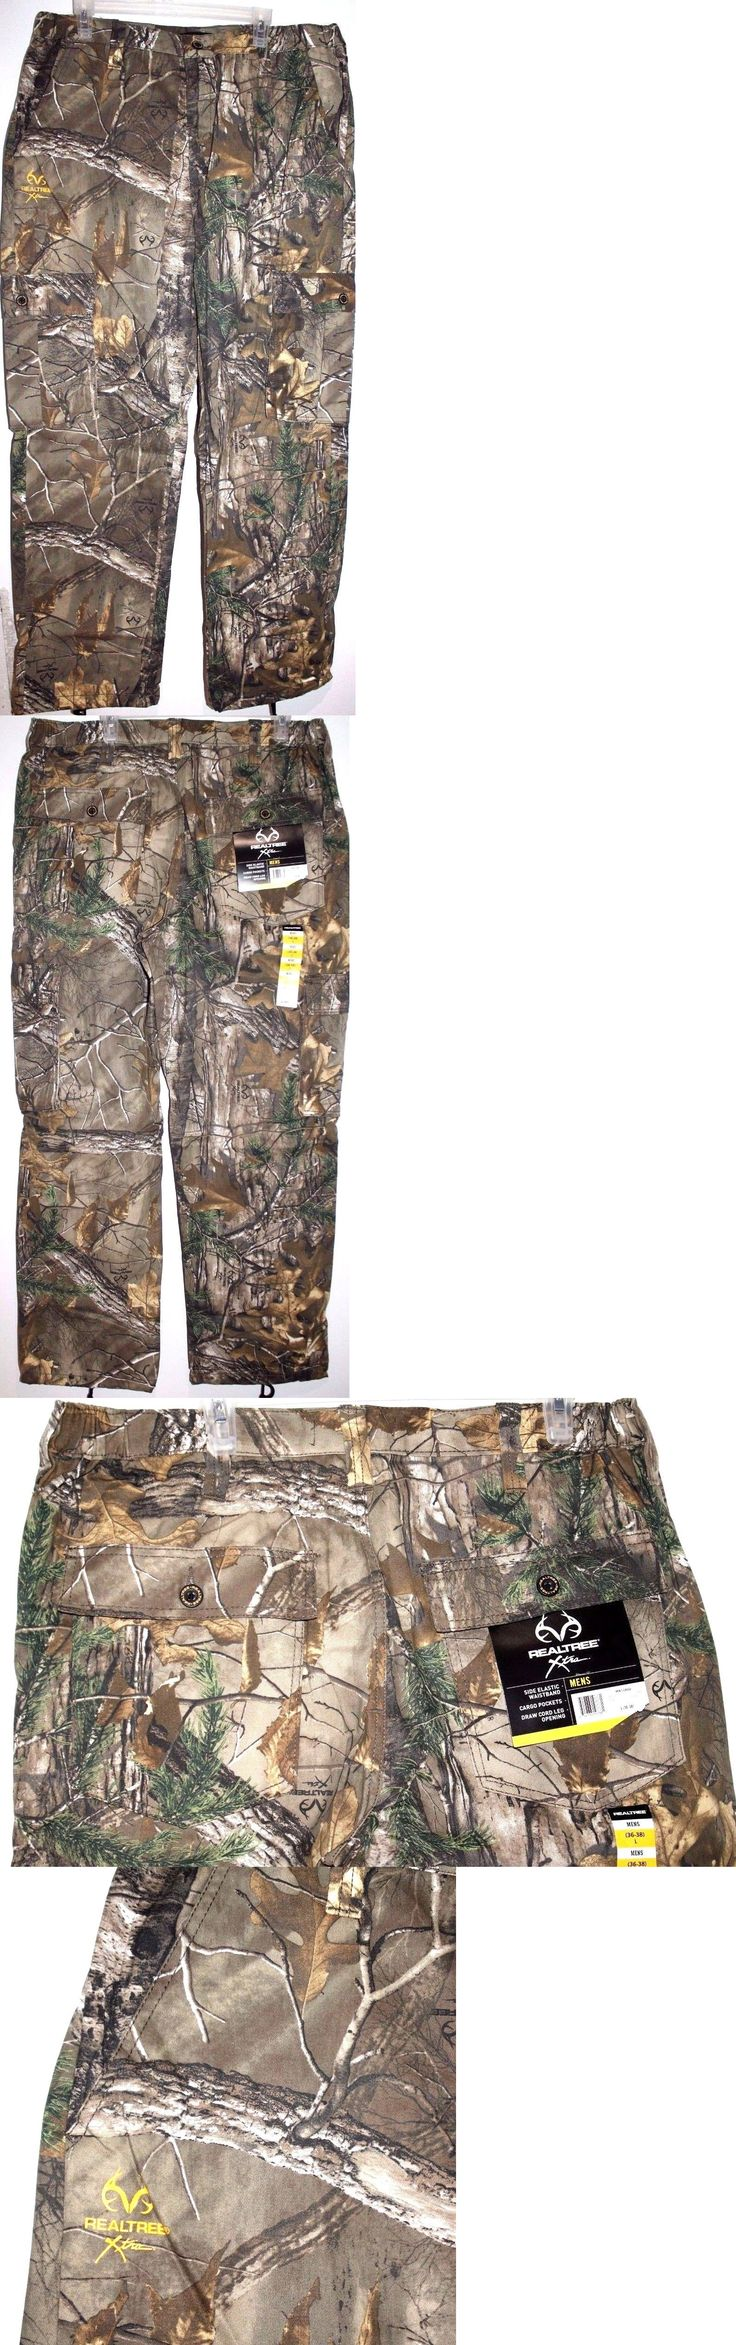 Pants and Bibs 177873: Realtree Xtra Cargo Pants Men Camo Pant Sizes Variation -> BUY IT NOW ONLY: $34.99 on eBay!